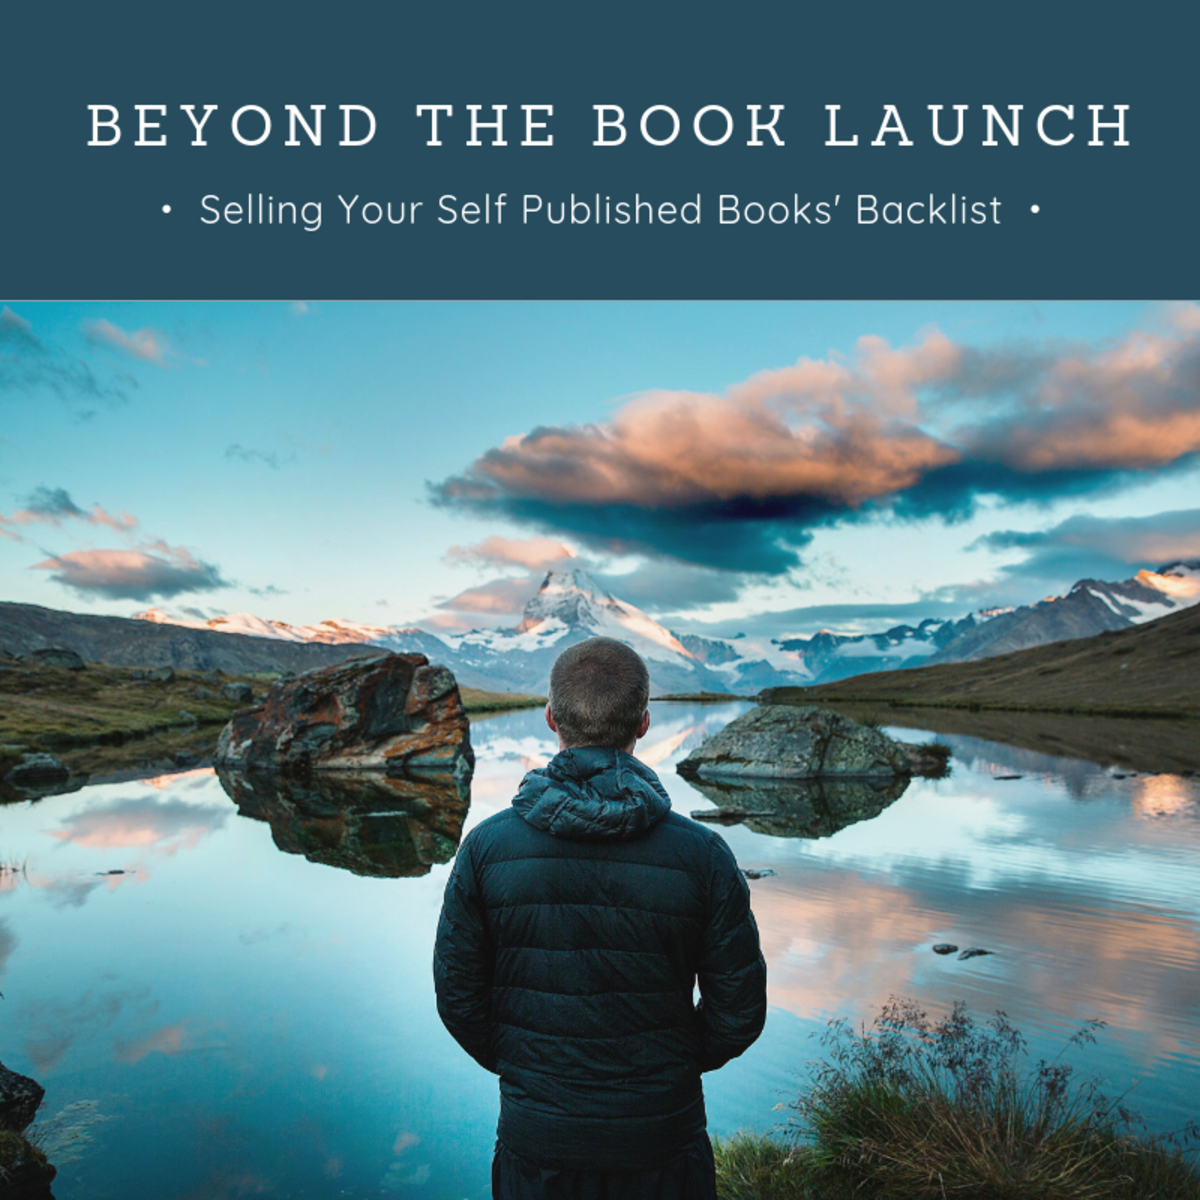 Beyond the Book Launch: Selling Your Self-Published Books' Backlist